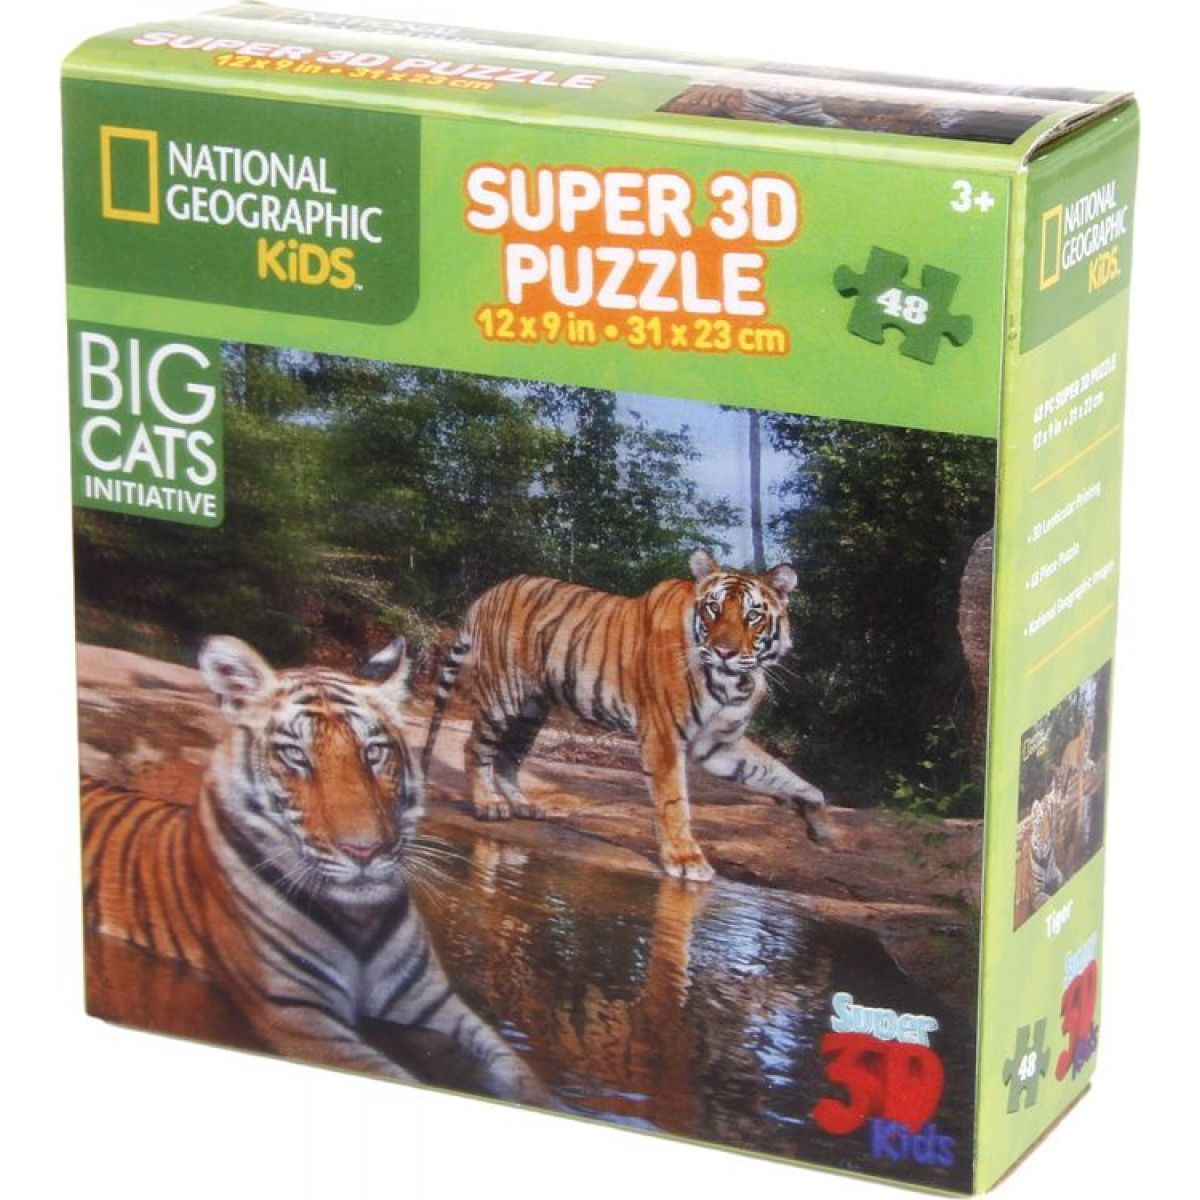 National Geographic Kids 3D Puzzle Tygr 48 dílků